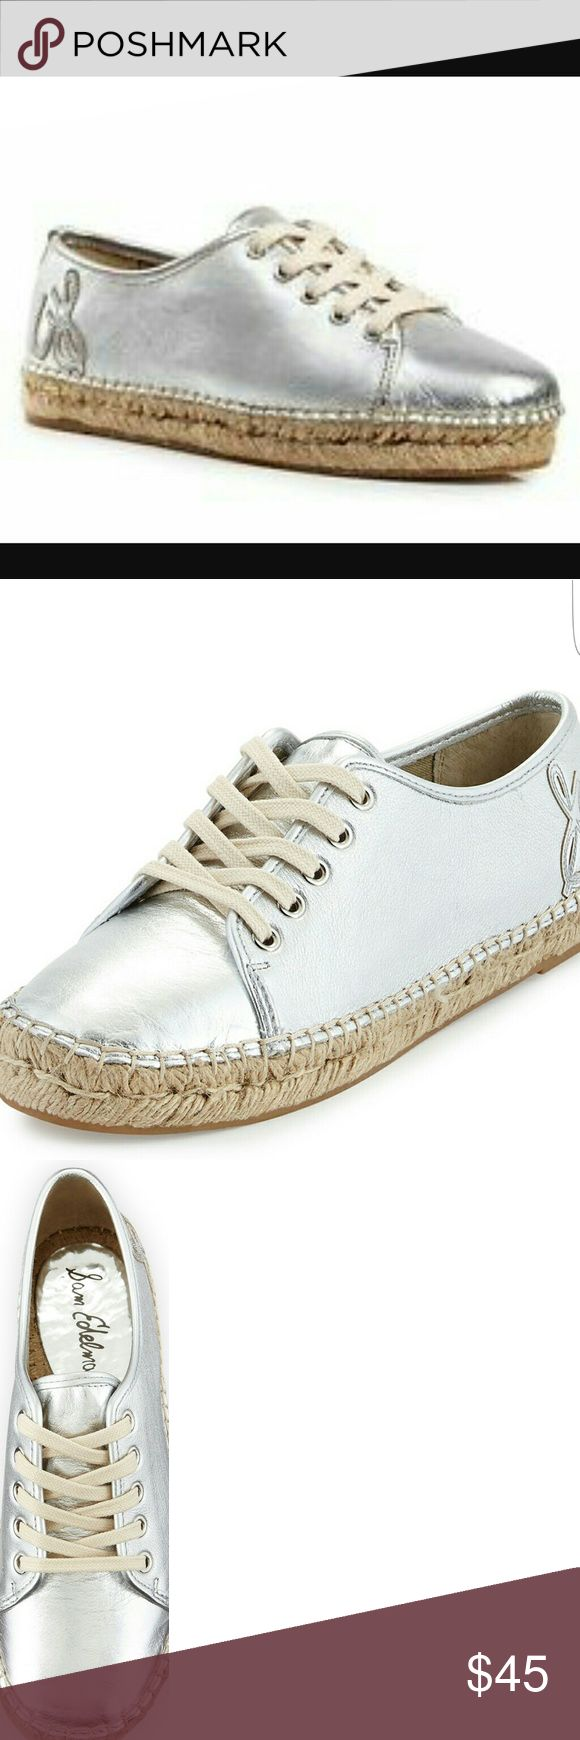 Sam Edelman Silver Espadrille Tennis Shoes Silver Espadrille Tennis Shoes with the rattan on the bottom and in the insides soles.   Super comfortable and easy to stay on feet since they are tied shut. Sam Edelman Shoes Espadrilles